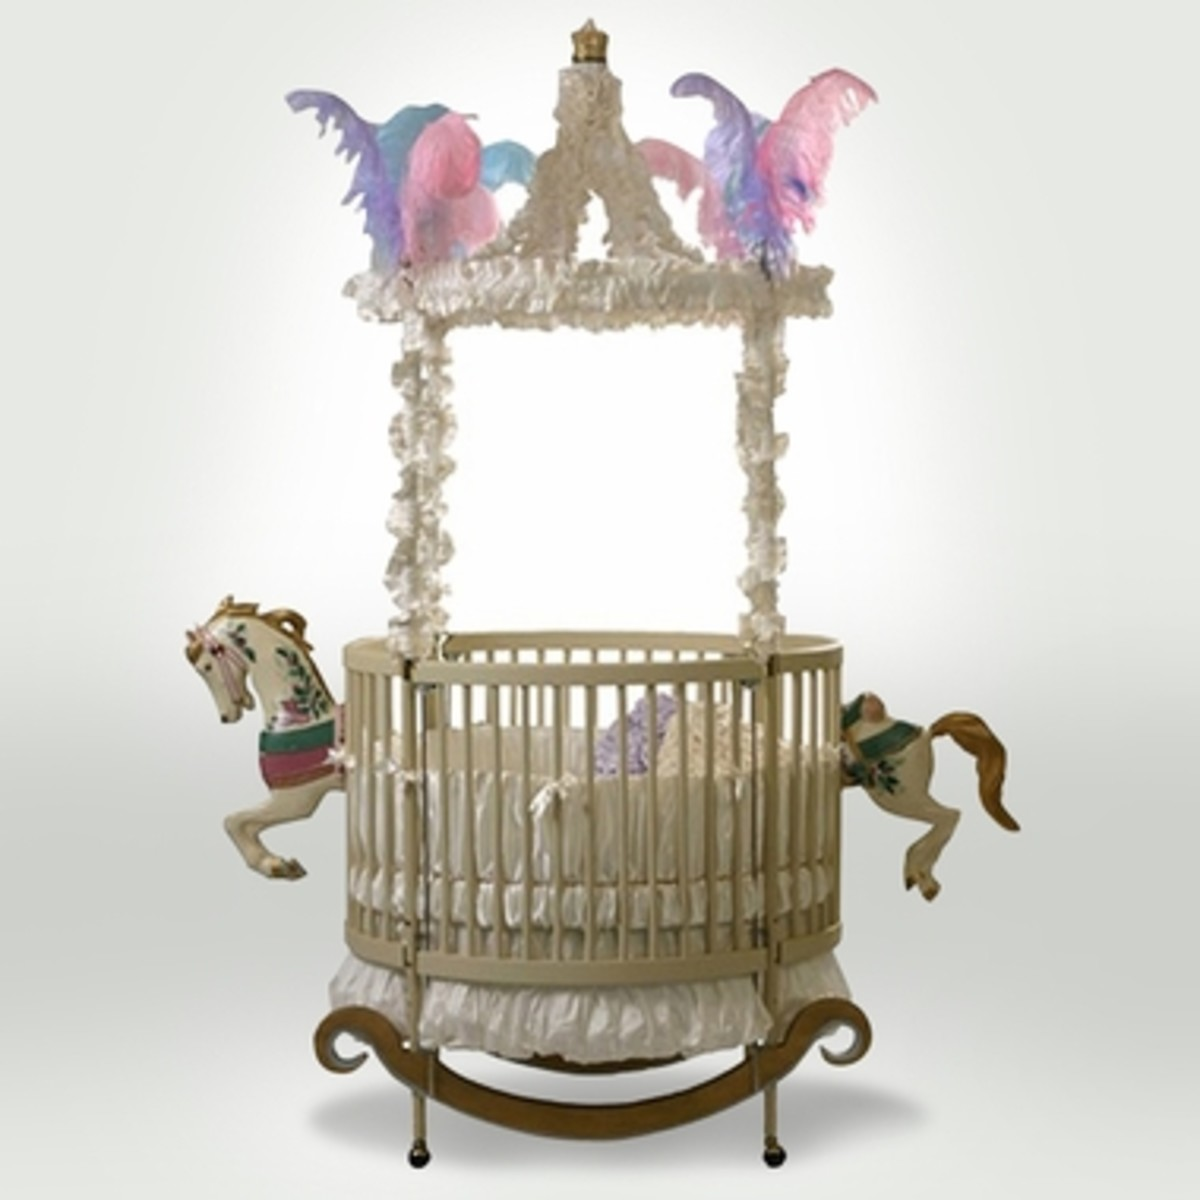 The Round Carousel Horse Crib